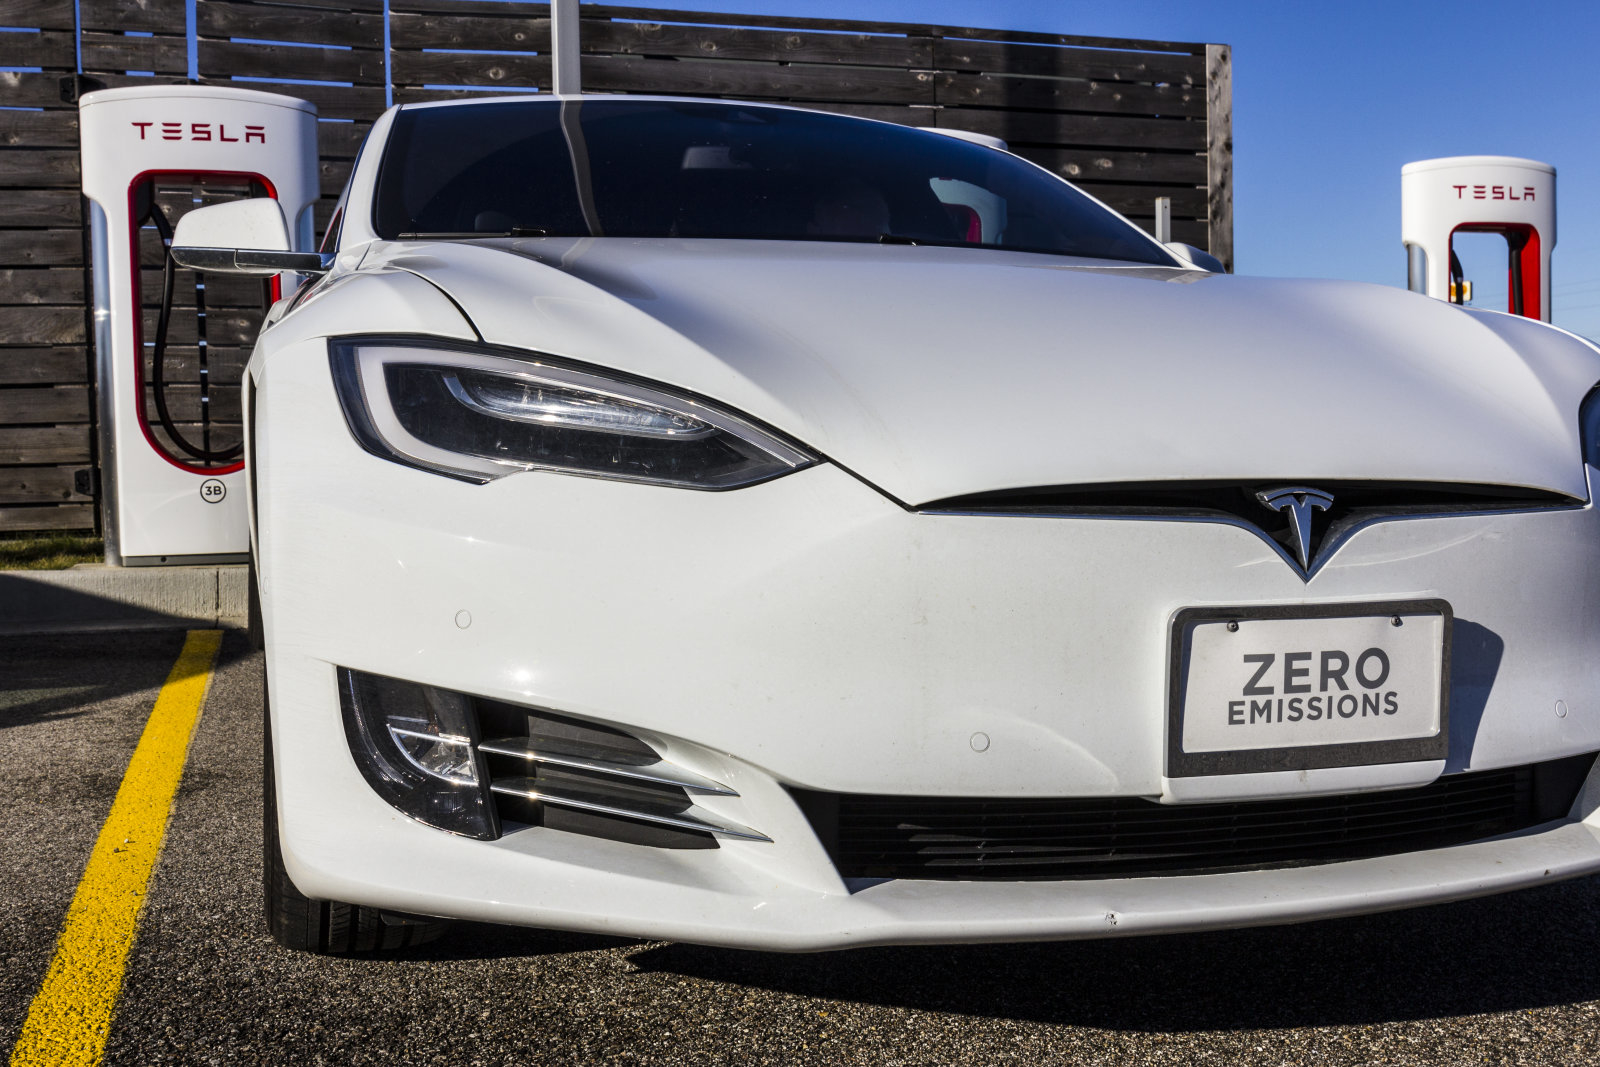 Lafayette, US - December 27, 2016: Tesla Supercharger Station. The Supercharger offers recharging of Model S and Model X electric vehicles XI